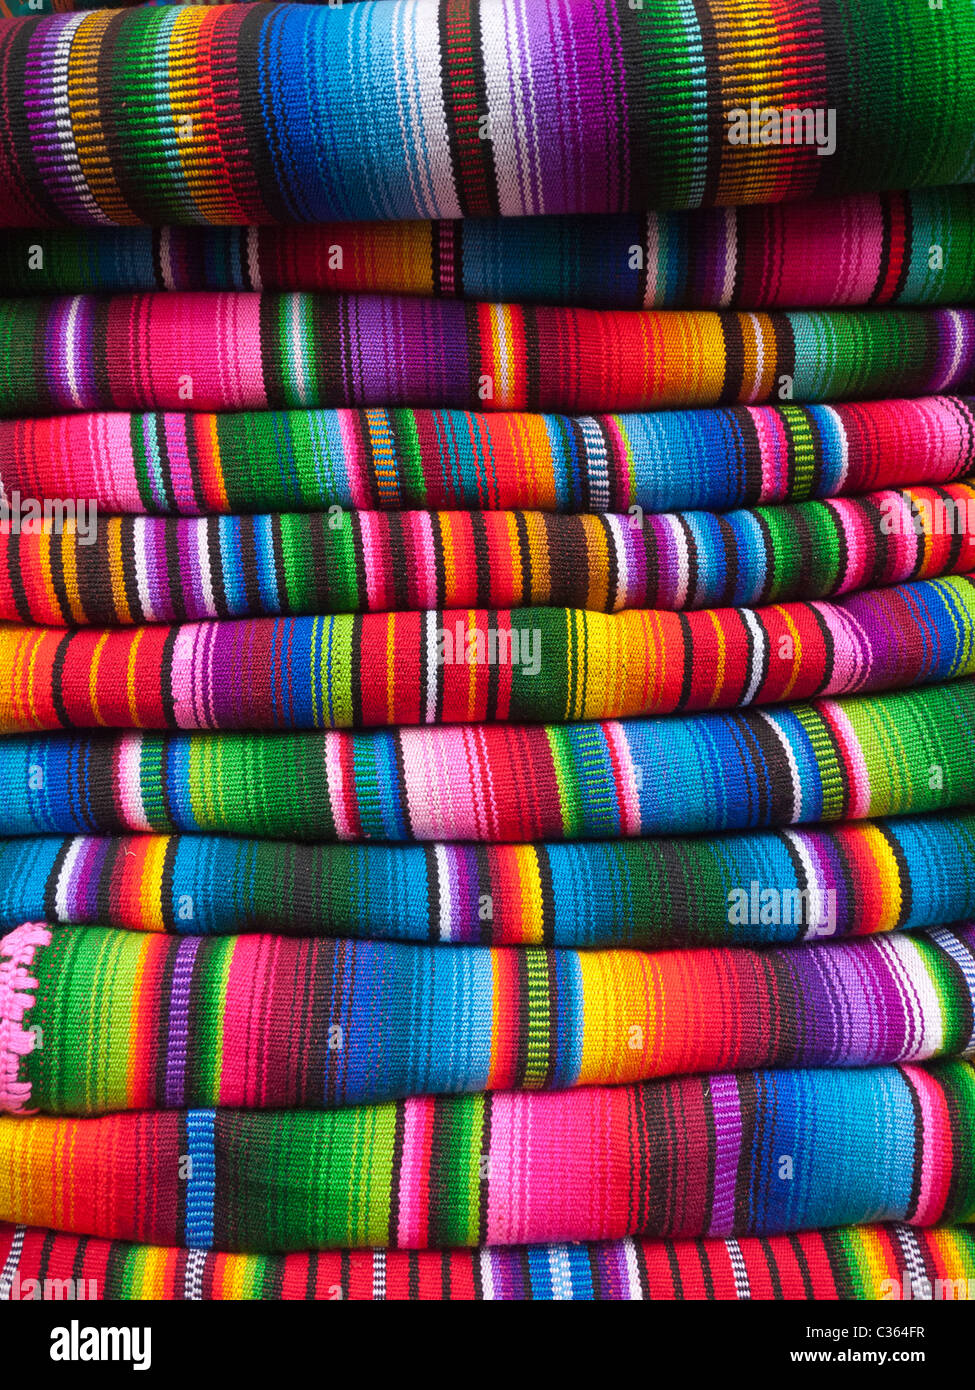 colorful blankets woven in a traditional manner are stacked up  - colorful blankets woven in a traditional manner are stacked up outside astore in chichicastenango guatemala